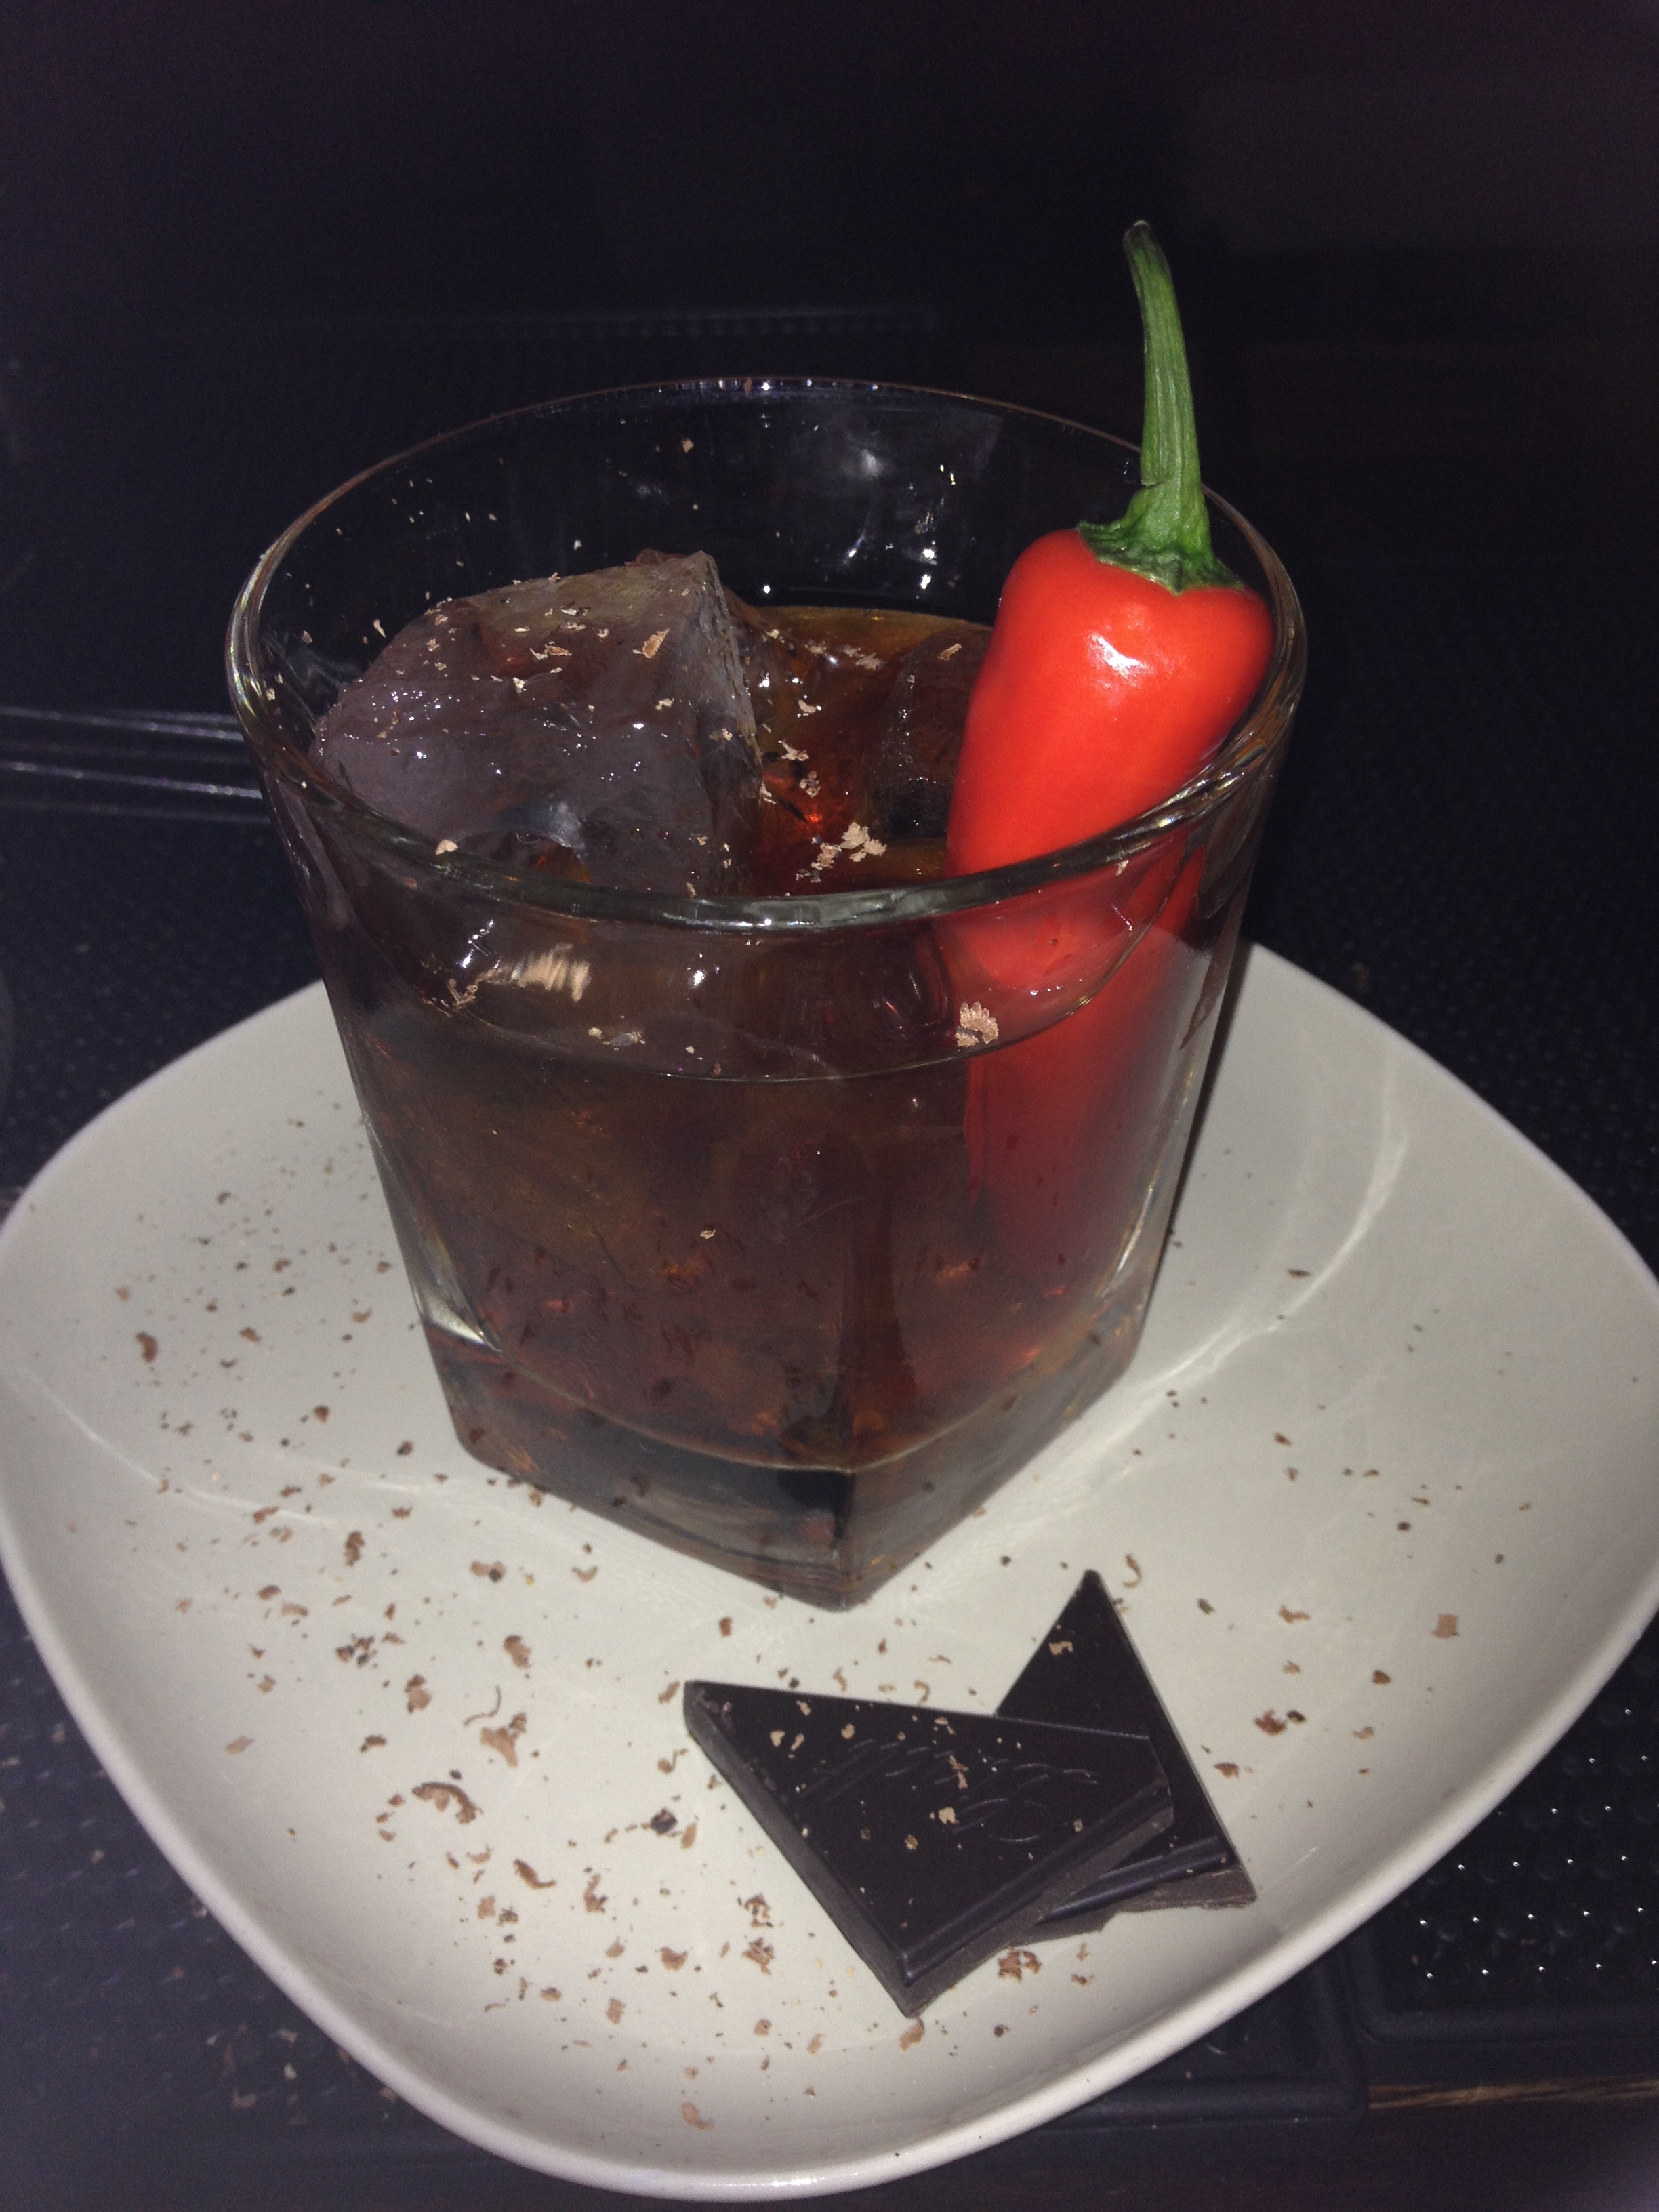 One of the many exciting cocktail combinations from Sub 13: Chilli Chocolate!